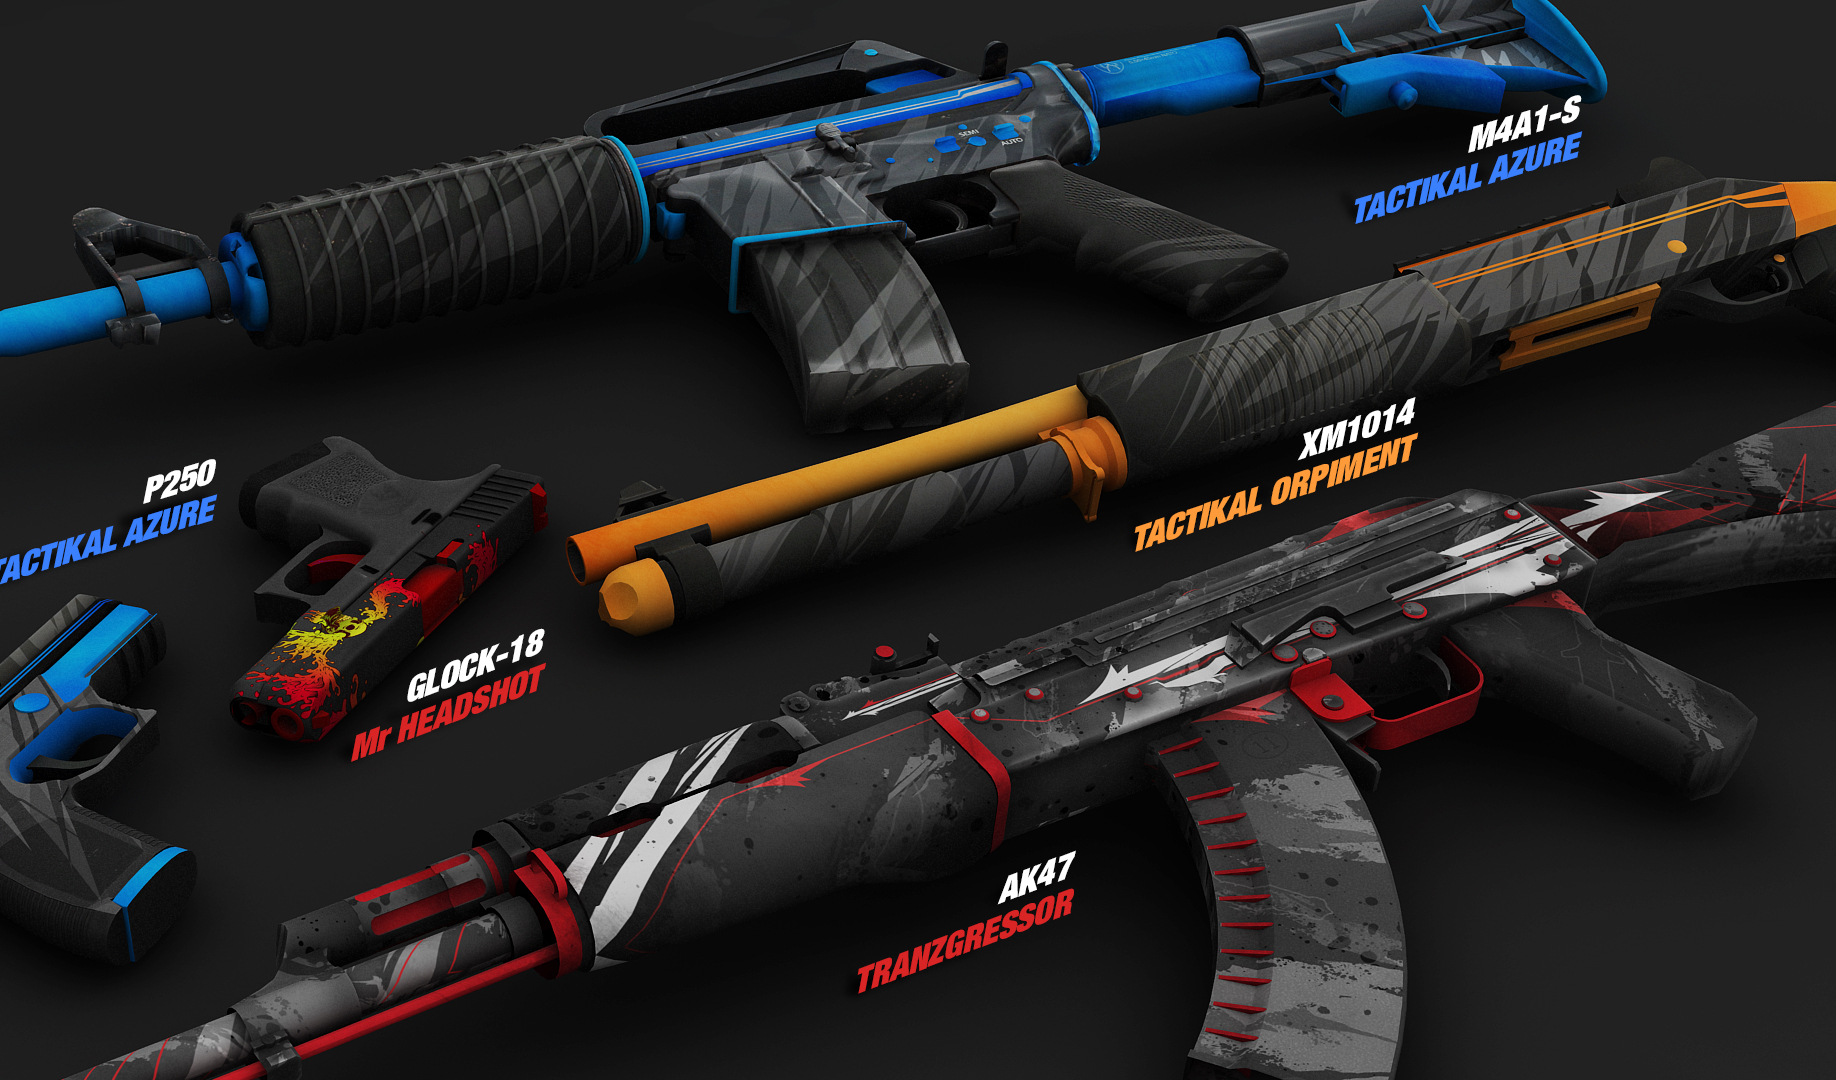 Coolest cs go weapon skins amd setting for csgo